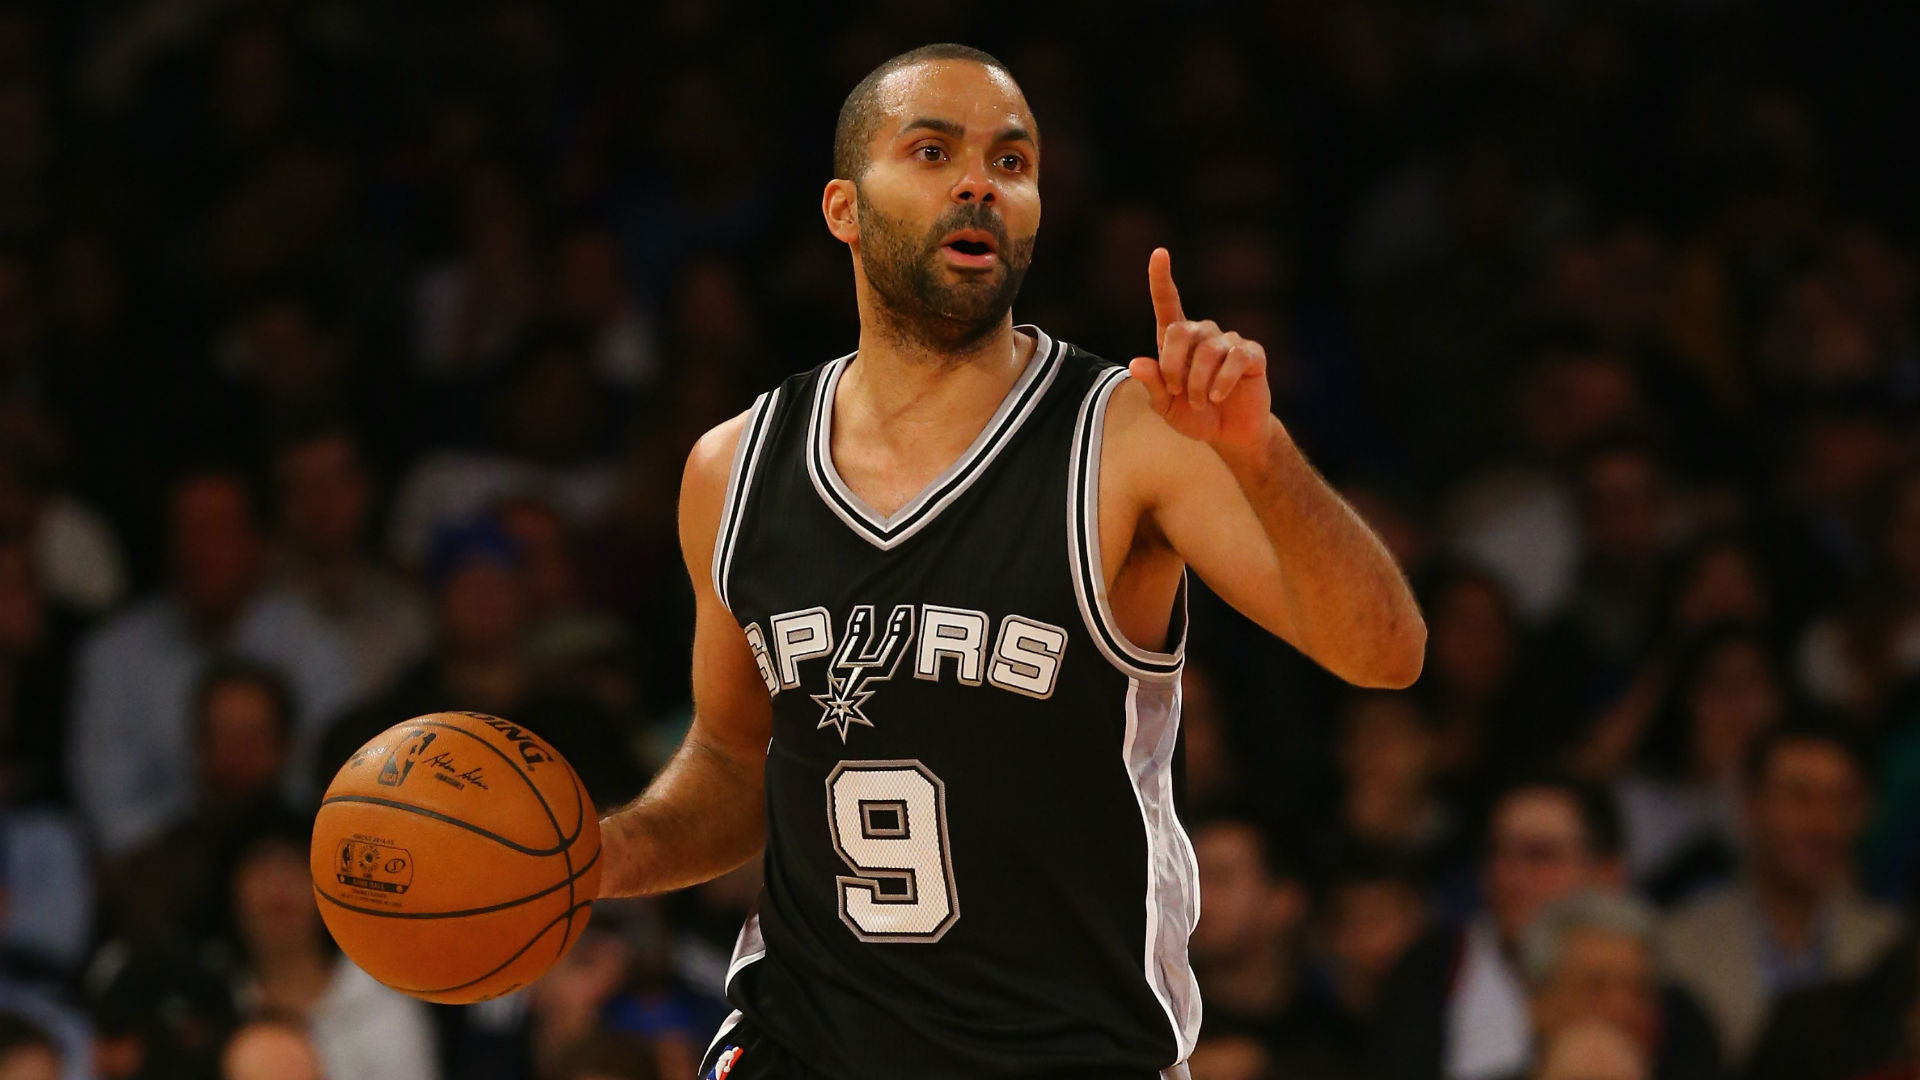 Tony Parker retires: Five Opta facts about point guard's NBA career